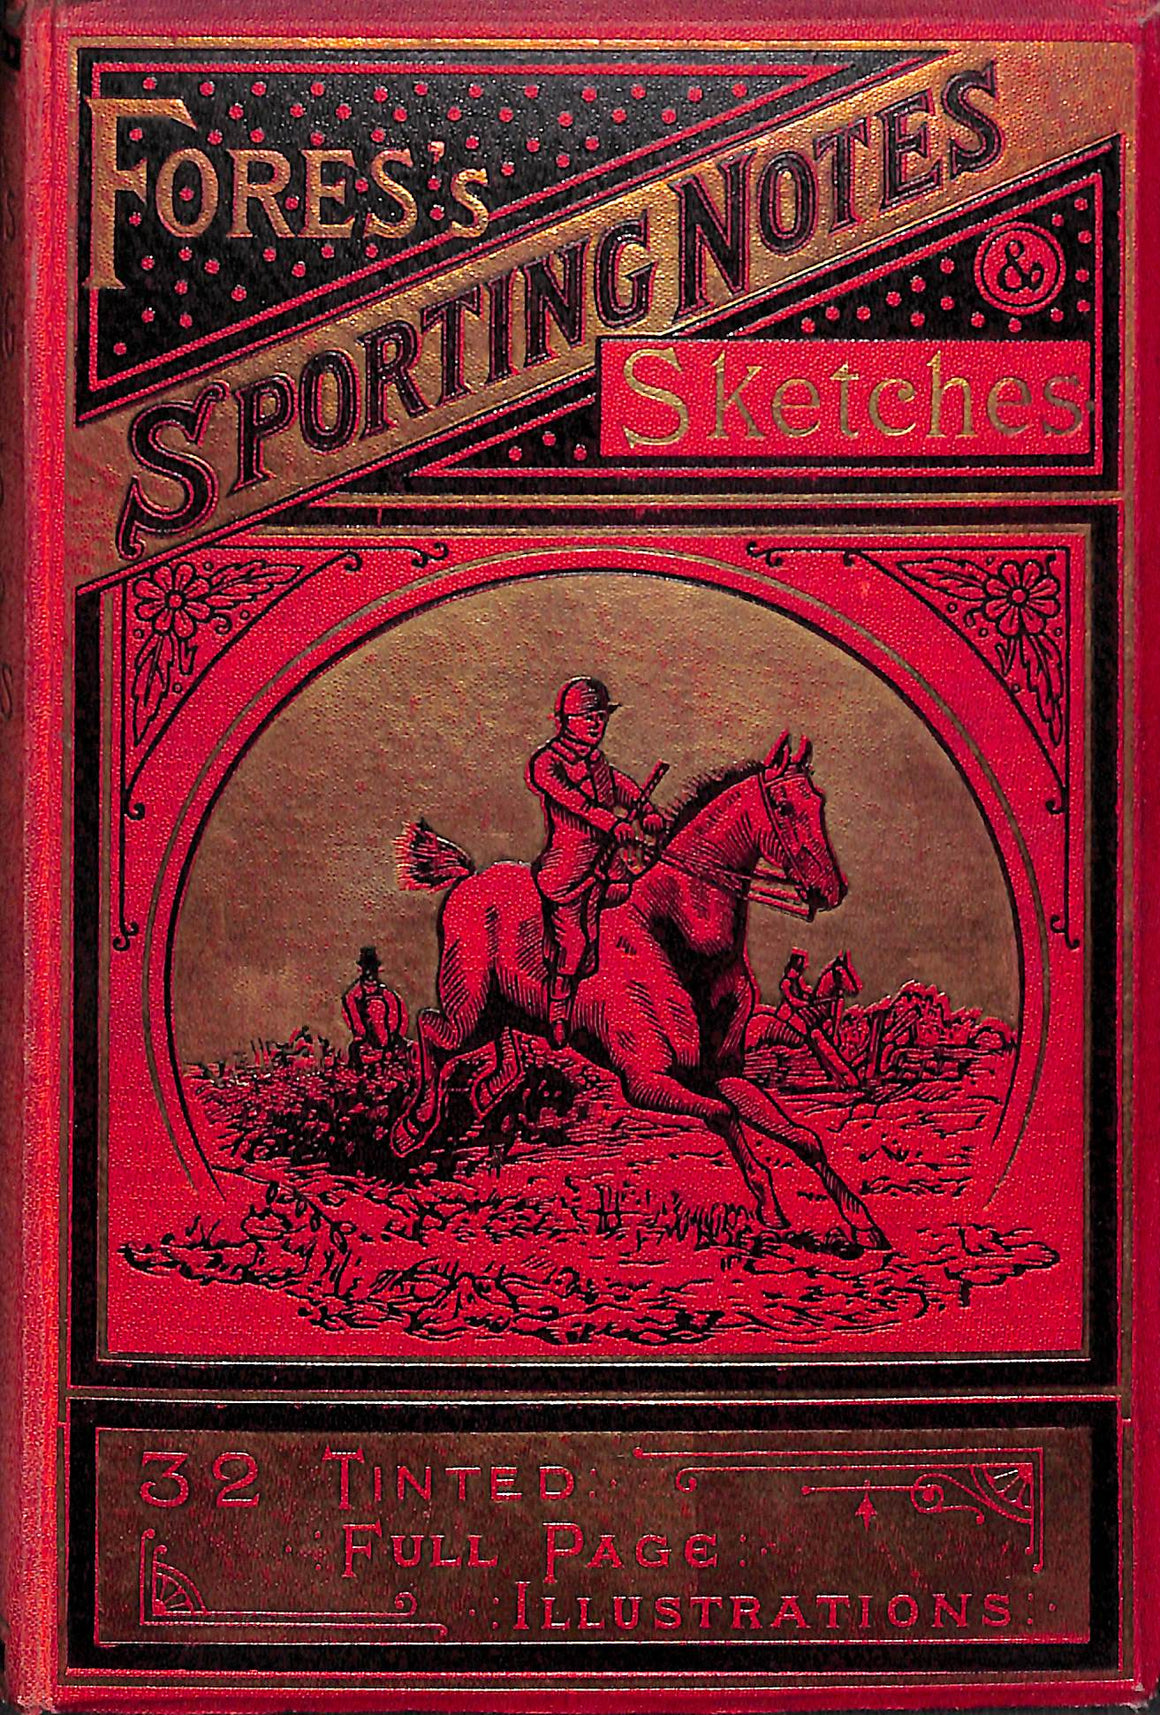 """Fores's Sporting Notes & Sketches Vol. V 1888-1889"""